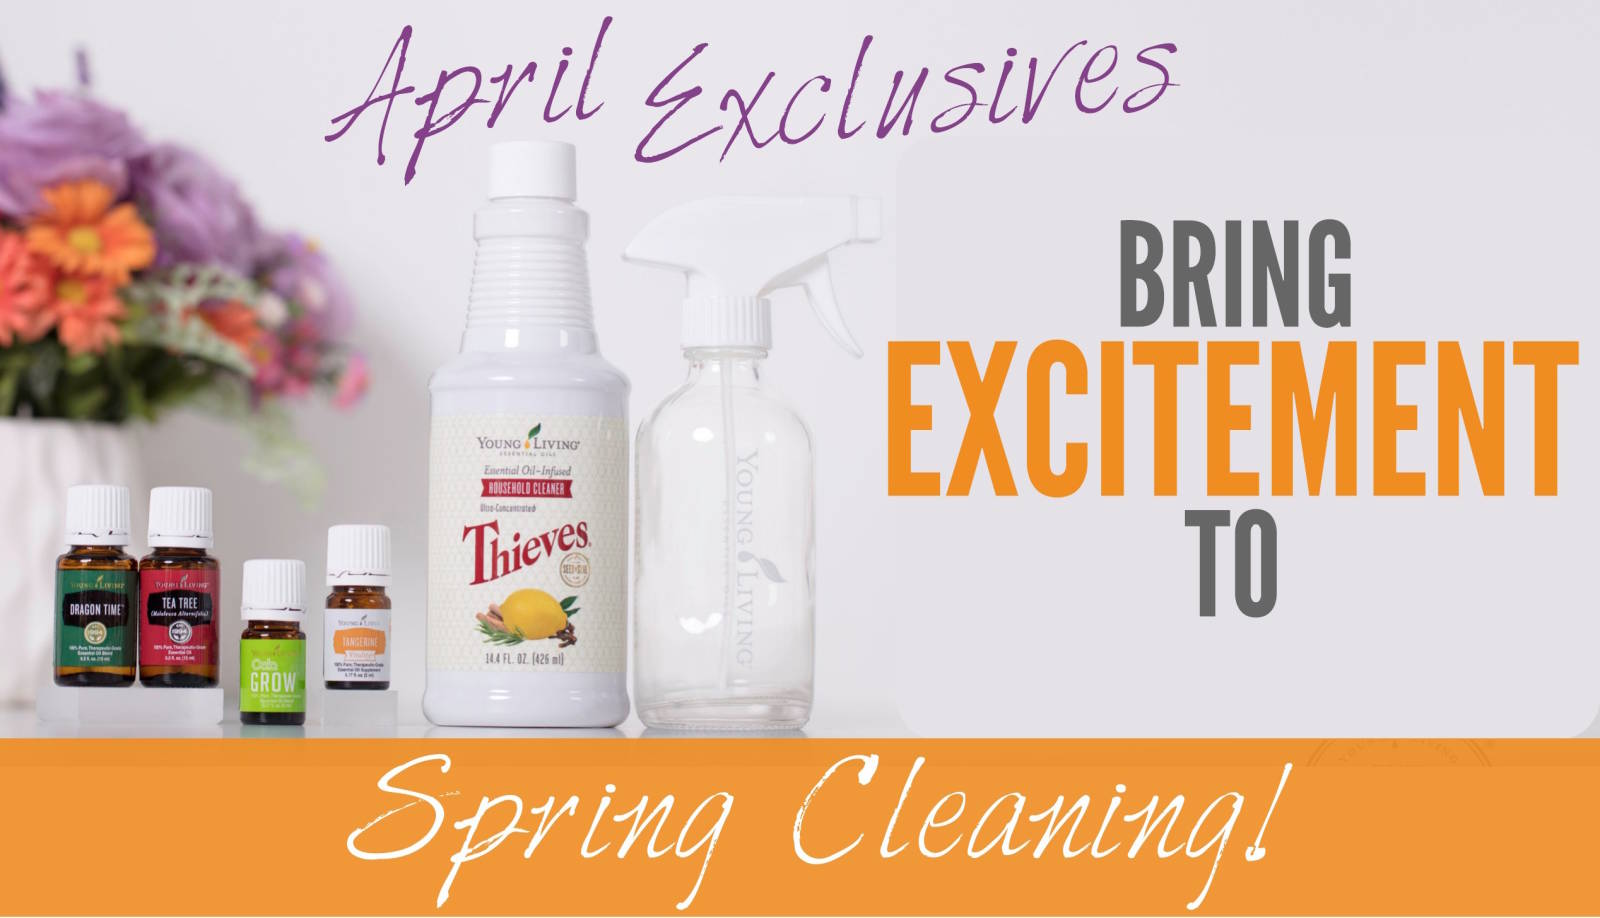 April Exclusives | Bring Excitement to Spring Cleaning